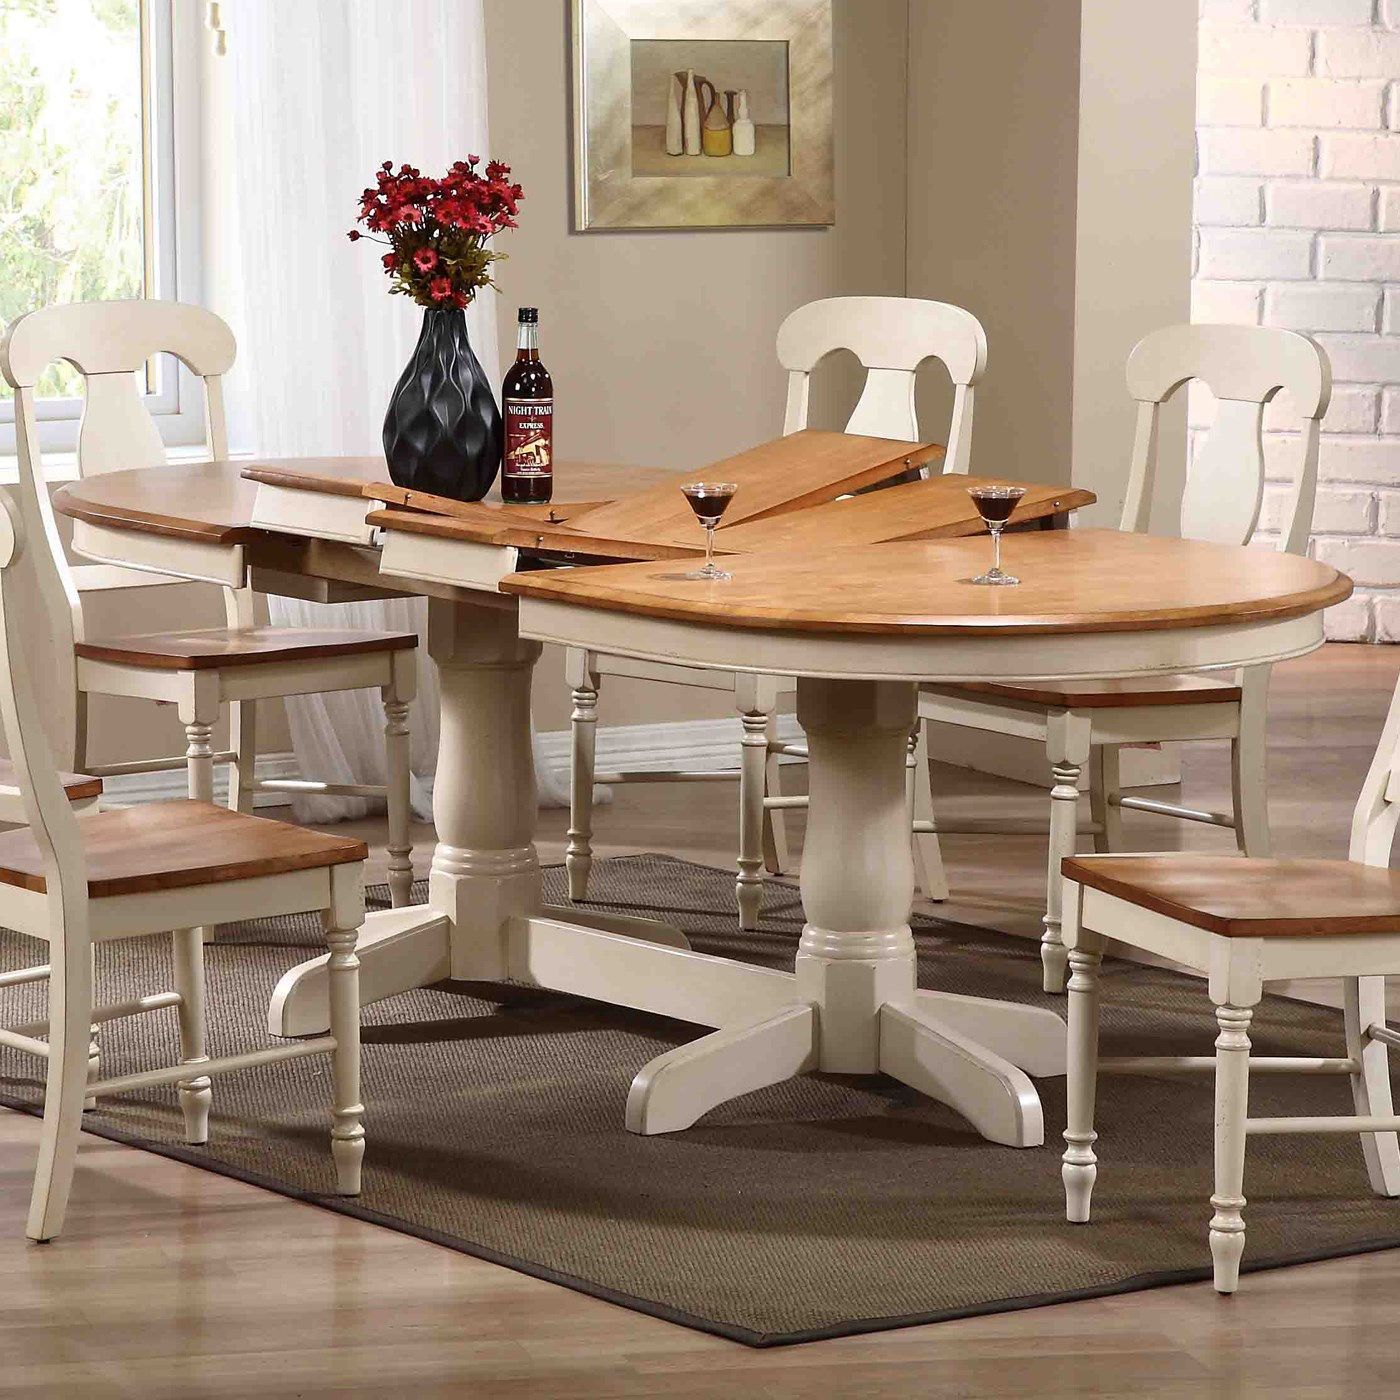 Iconic Furniture Ov 90 Oval Double Butterfly Leaf Table With